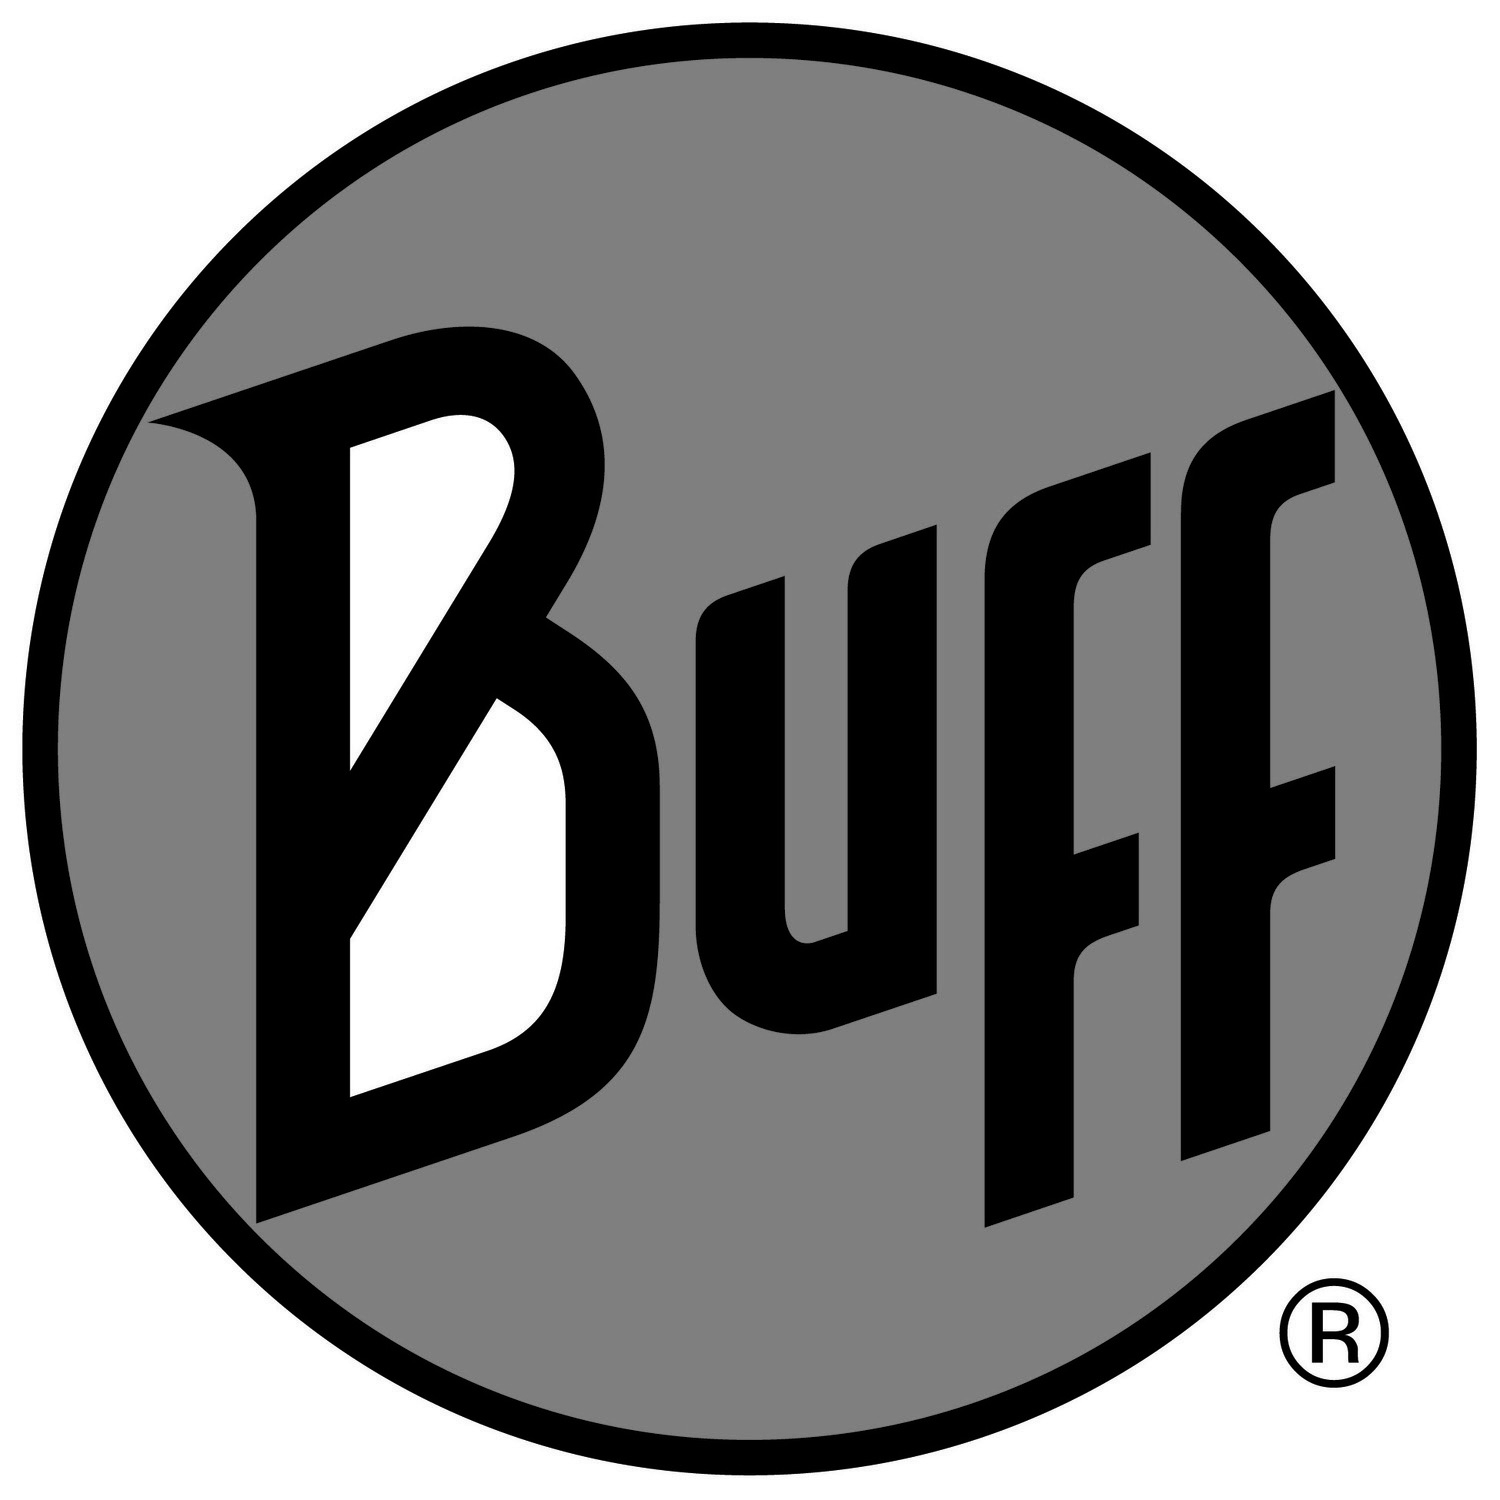 BUFF®-logo-for-Sports-line-CMYK-Copy-1.jpg